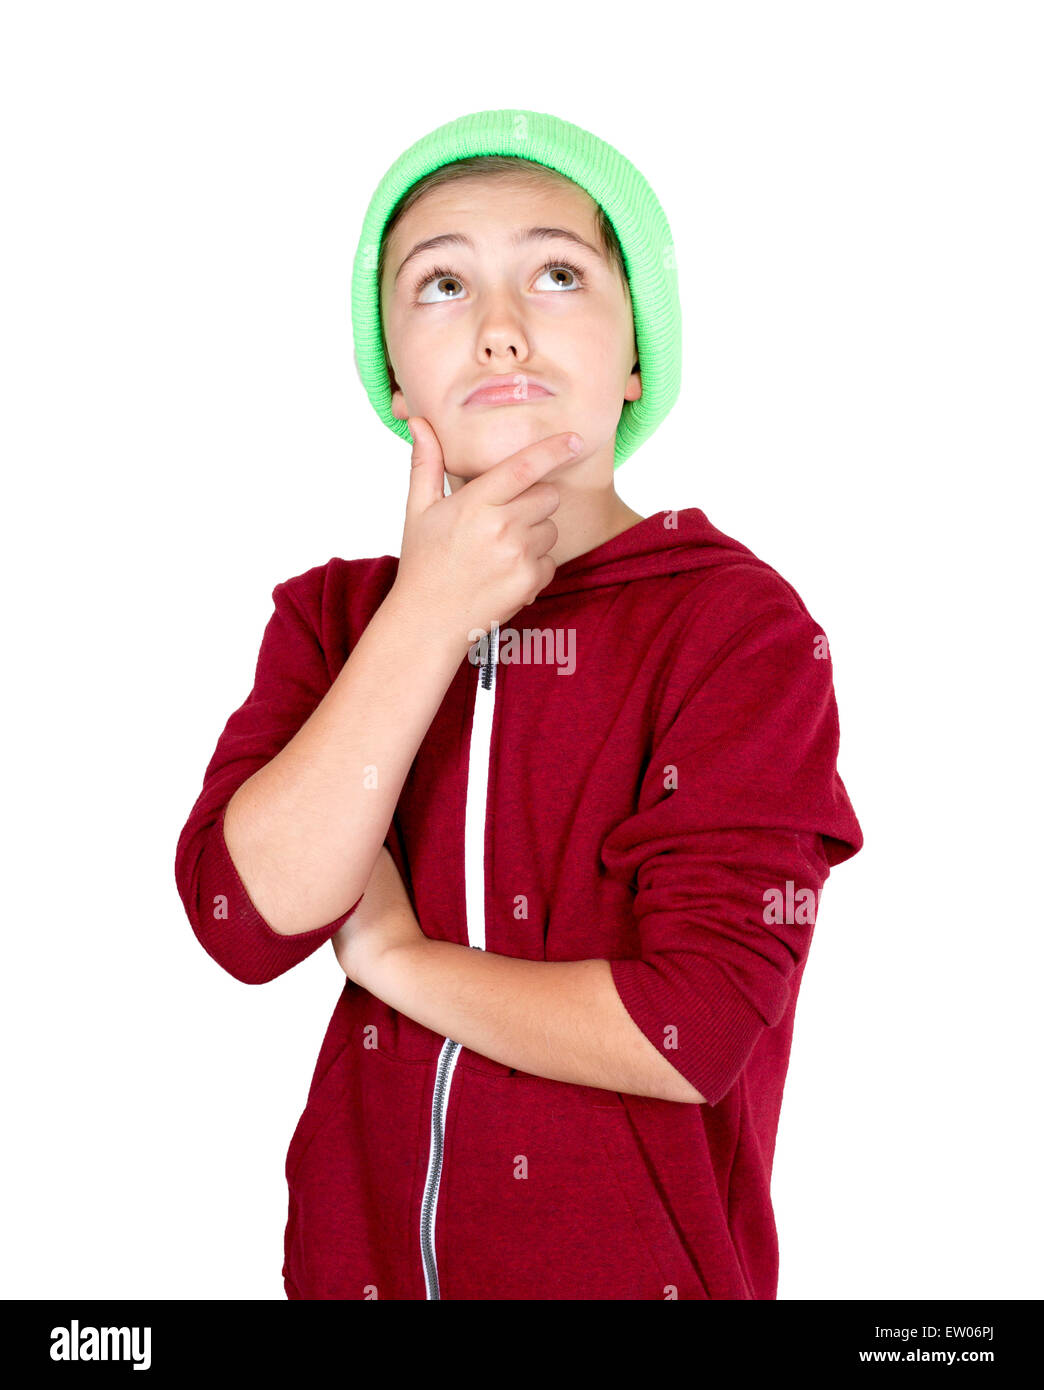 portrait of a young boy looking thoughtfully - Stock Image